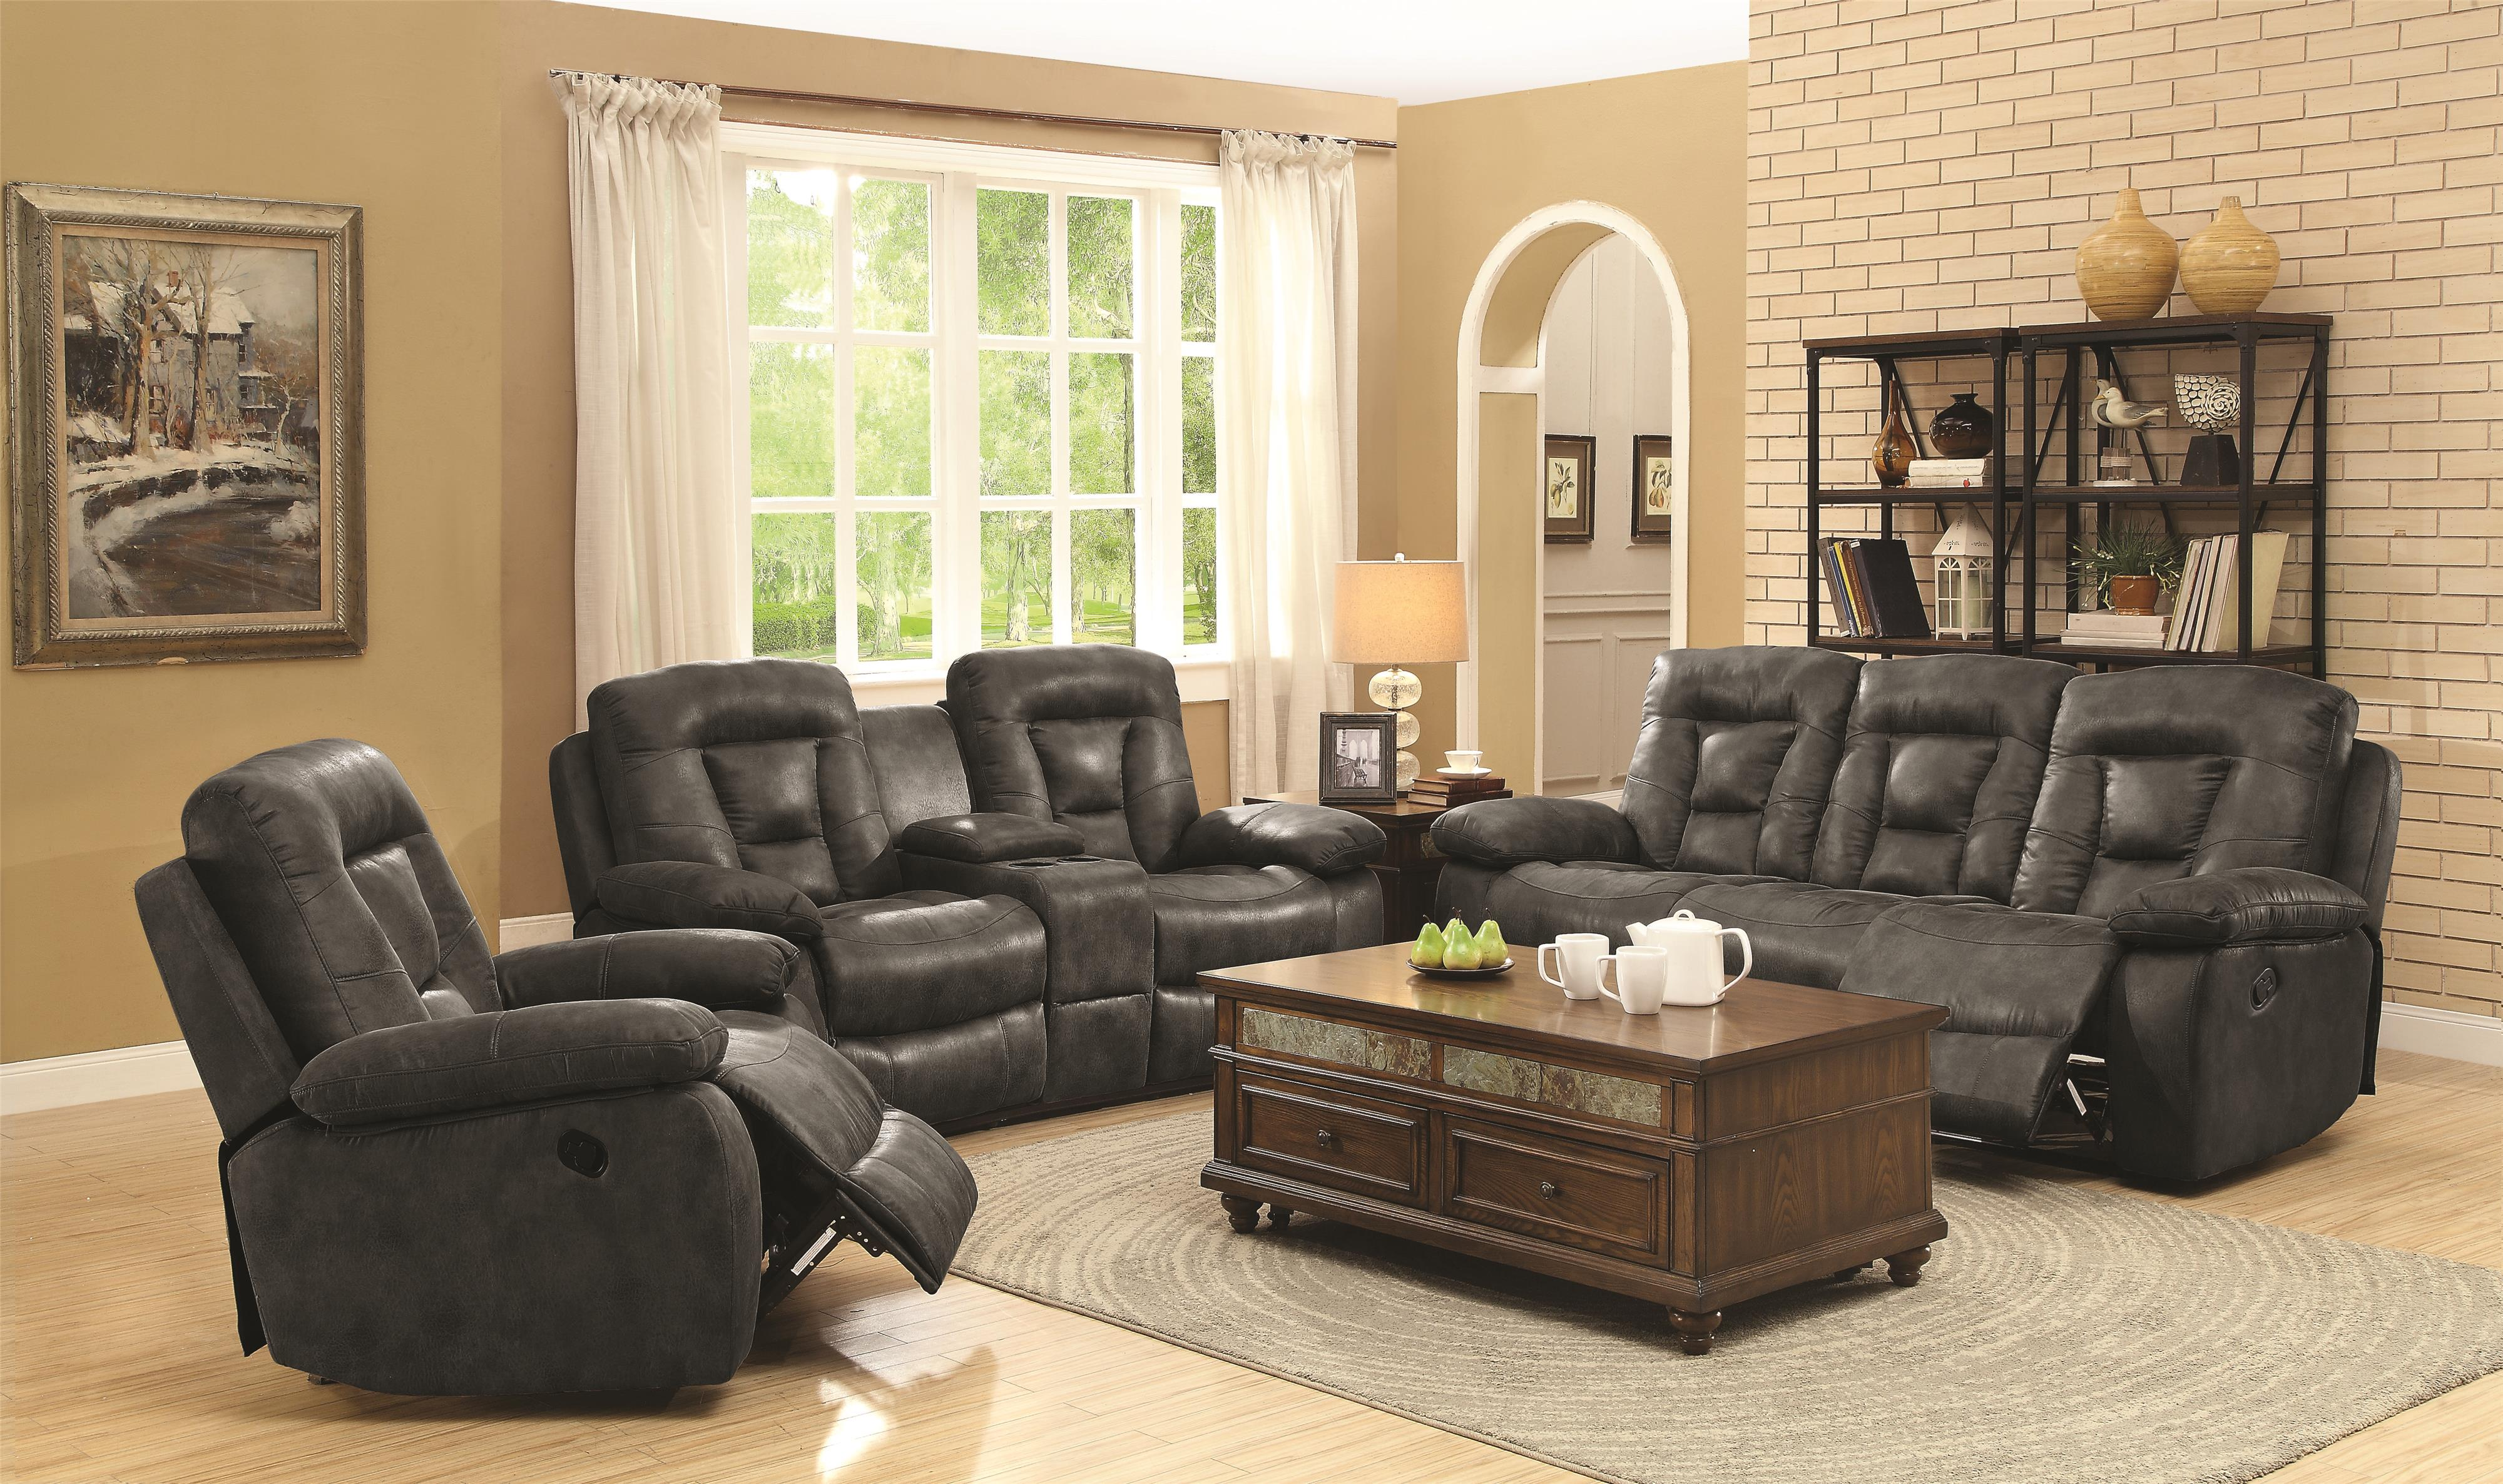 Evensky Power Recliner In Performance Fabric Quality Furniture At Affordable Prices In